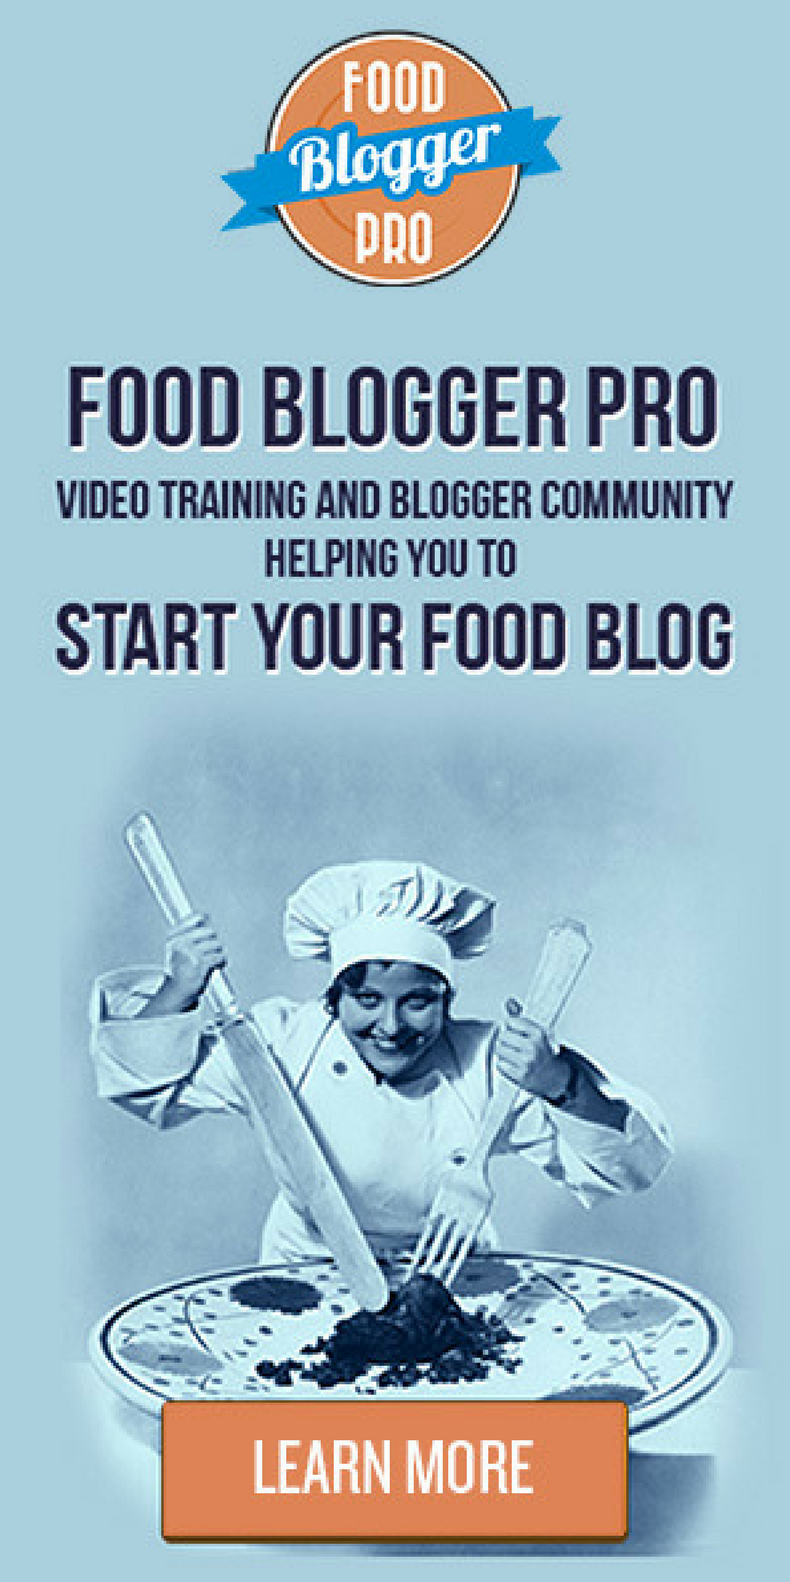 Learn how to grow your food blog with Food Blogger Pro. FBP offers great resources for improving food photography, SEO, and social media! #foodbloggerpro #growyourblog #growyourbusiness #foodblogging #learnhowtobloggrow food blog | food blogger pro | food photography | food videos | improve SEO | learn social media for bloggers | why join food blogger pro | increase blog traffic | how to blog | grow your business